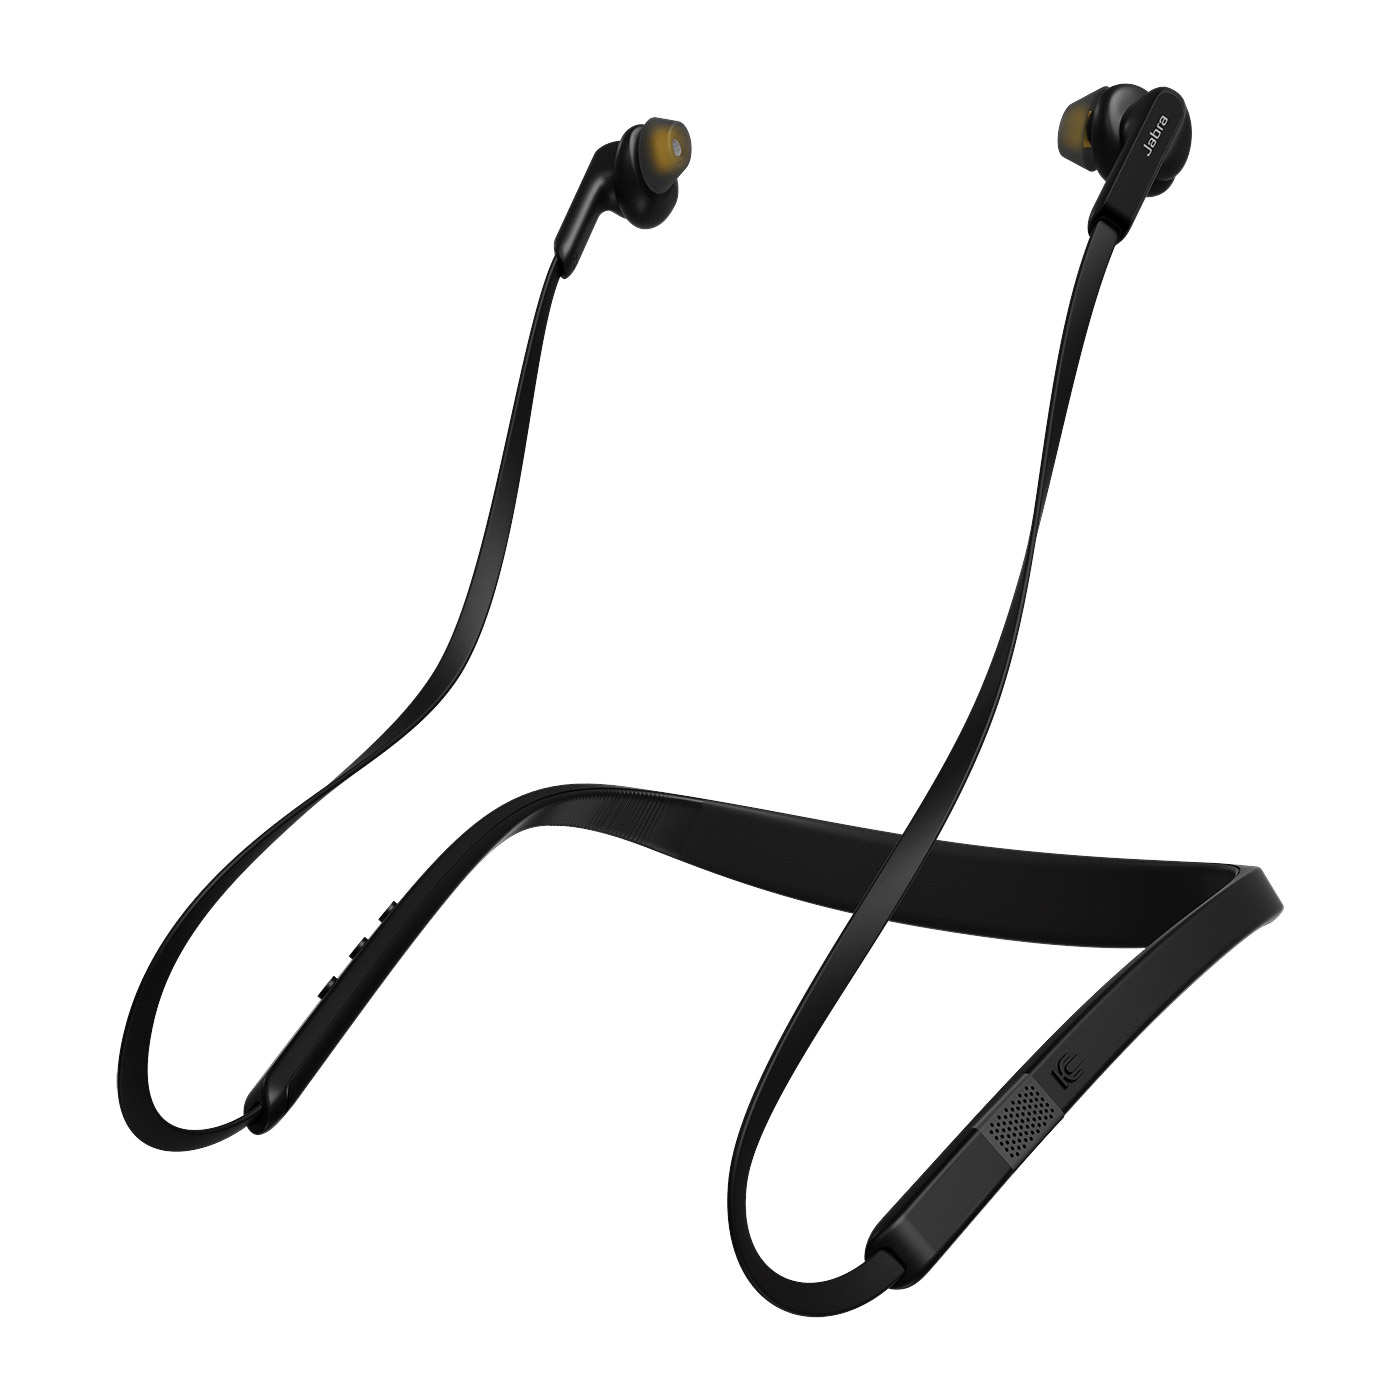 wholesale cellphone accessories JABRA BLUETOOTH STEREO HEADPHONES